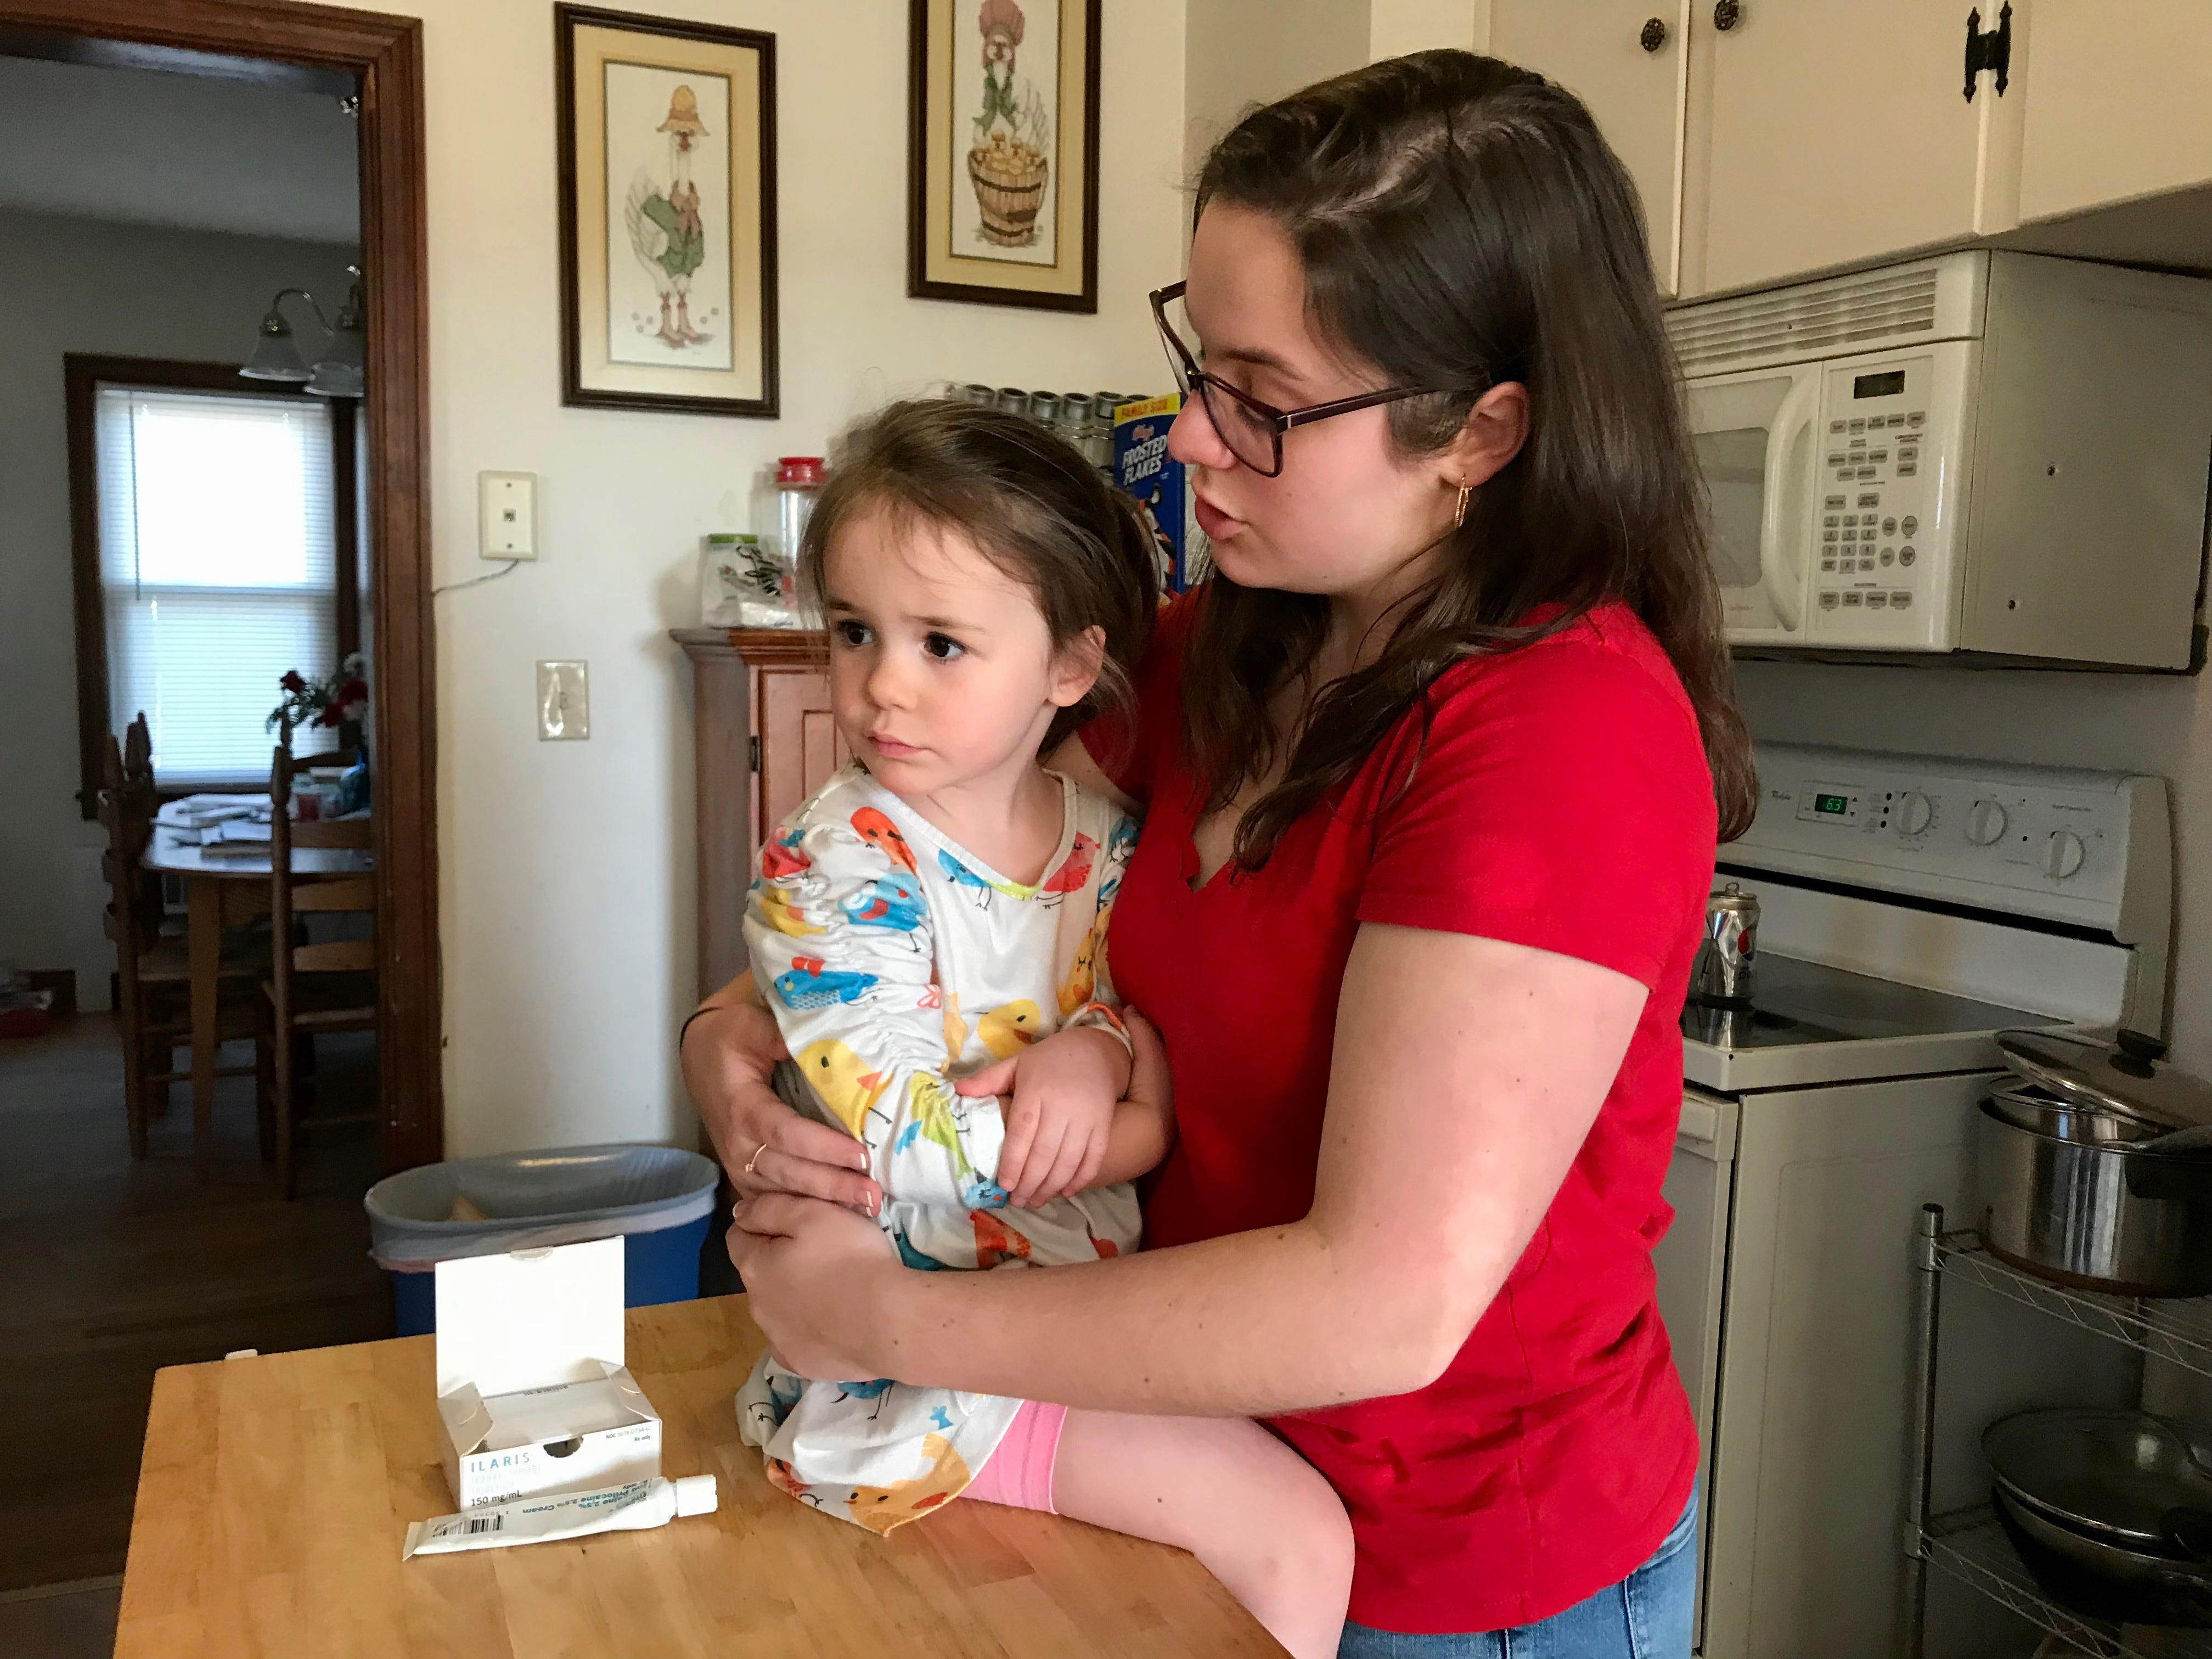 Big sister Julia Bussey, 19, holds her sister Rebecca Bussey, 3, while Rebecca's nurse is preparing a syringe for injection. Rebecca gets a monthly dose of the biologic medication Ilaris made by Novartis to treat Systemic Juvenile Idiopathic Arthritis. Photograph taken on Friday, March 15, 2019 in Ladd, Virginia.